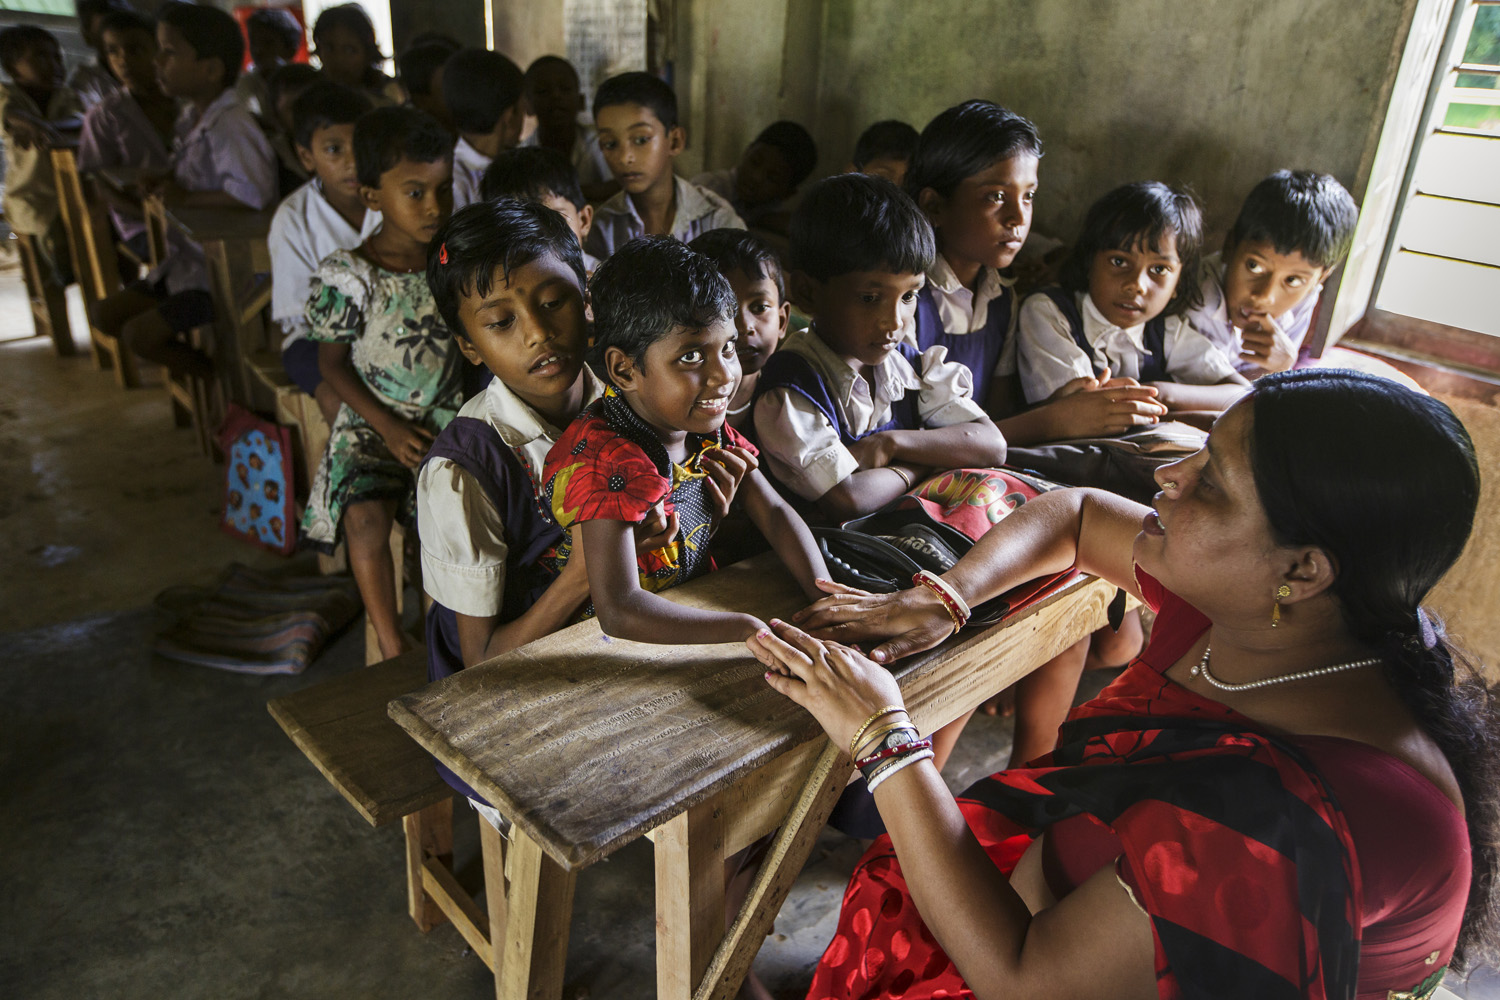 Anita Singh participates in lessons at her rural Indian school, Oct. 20, 2013 in West Bengal, India.